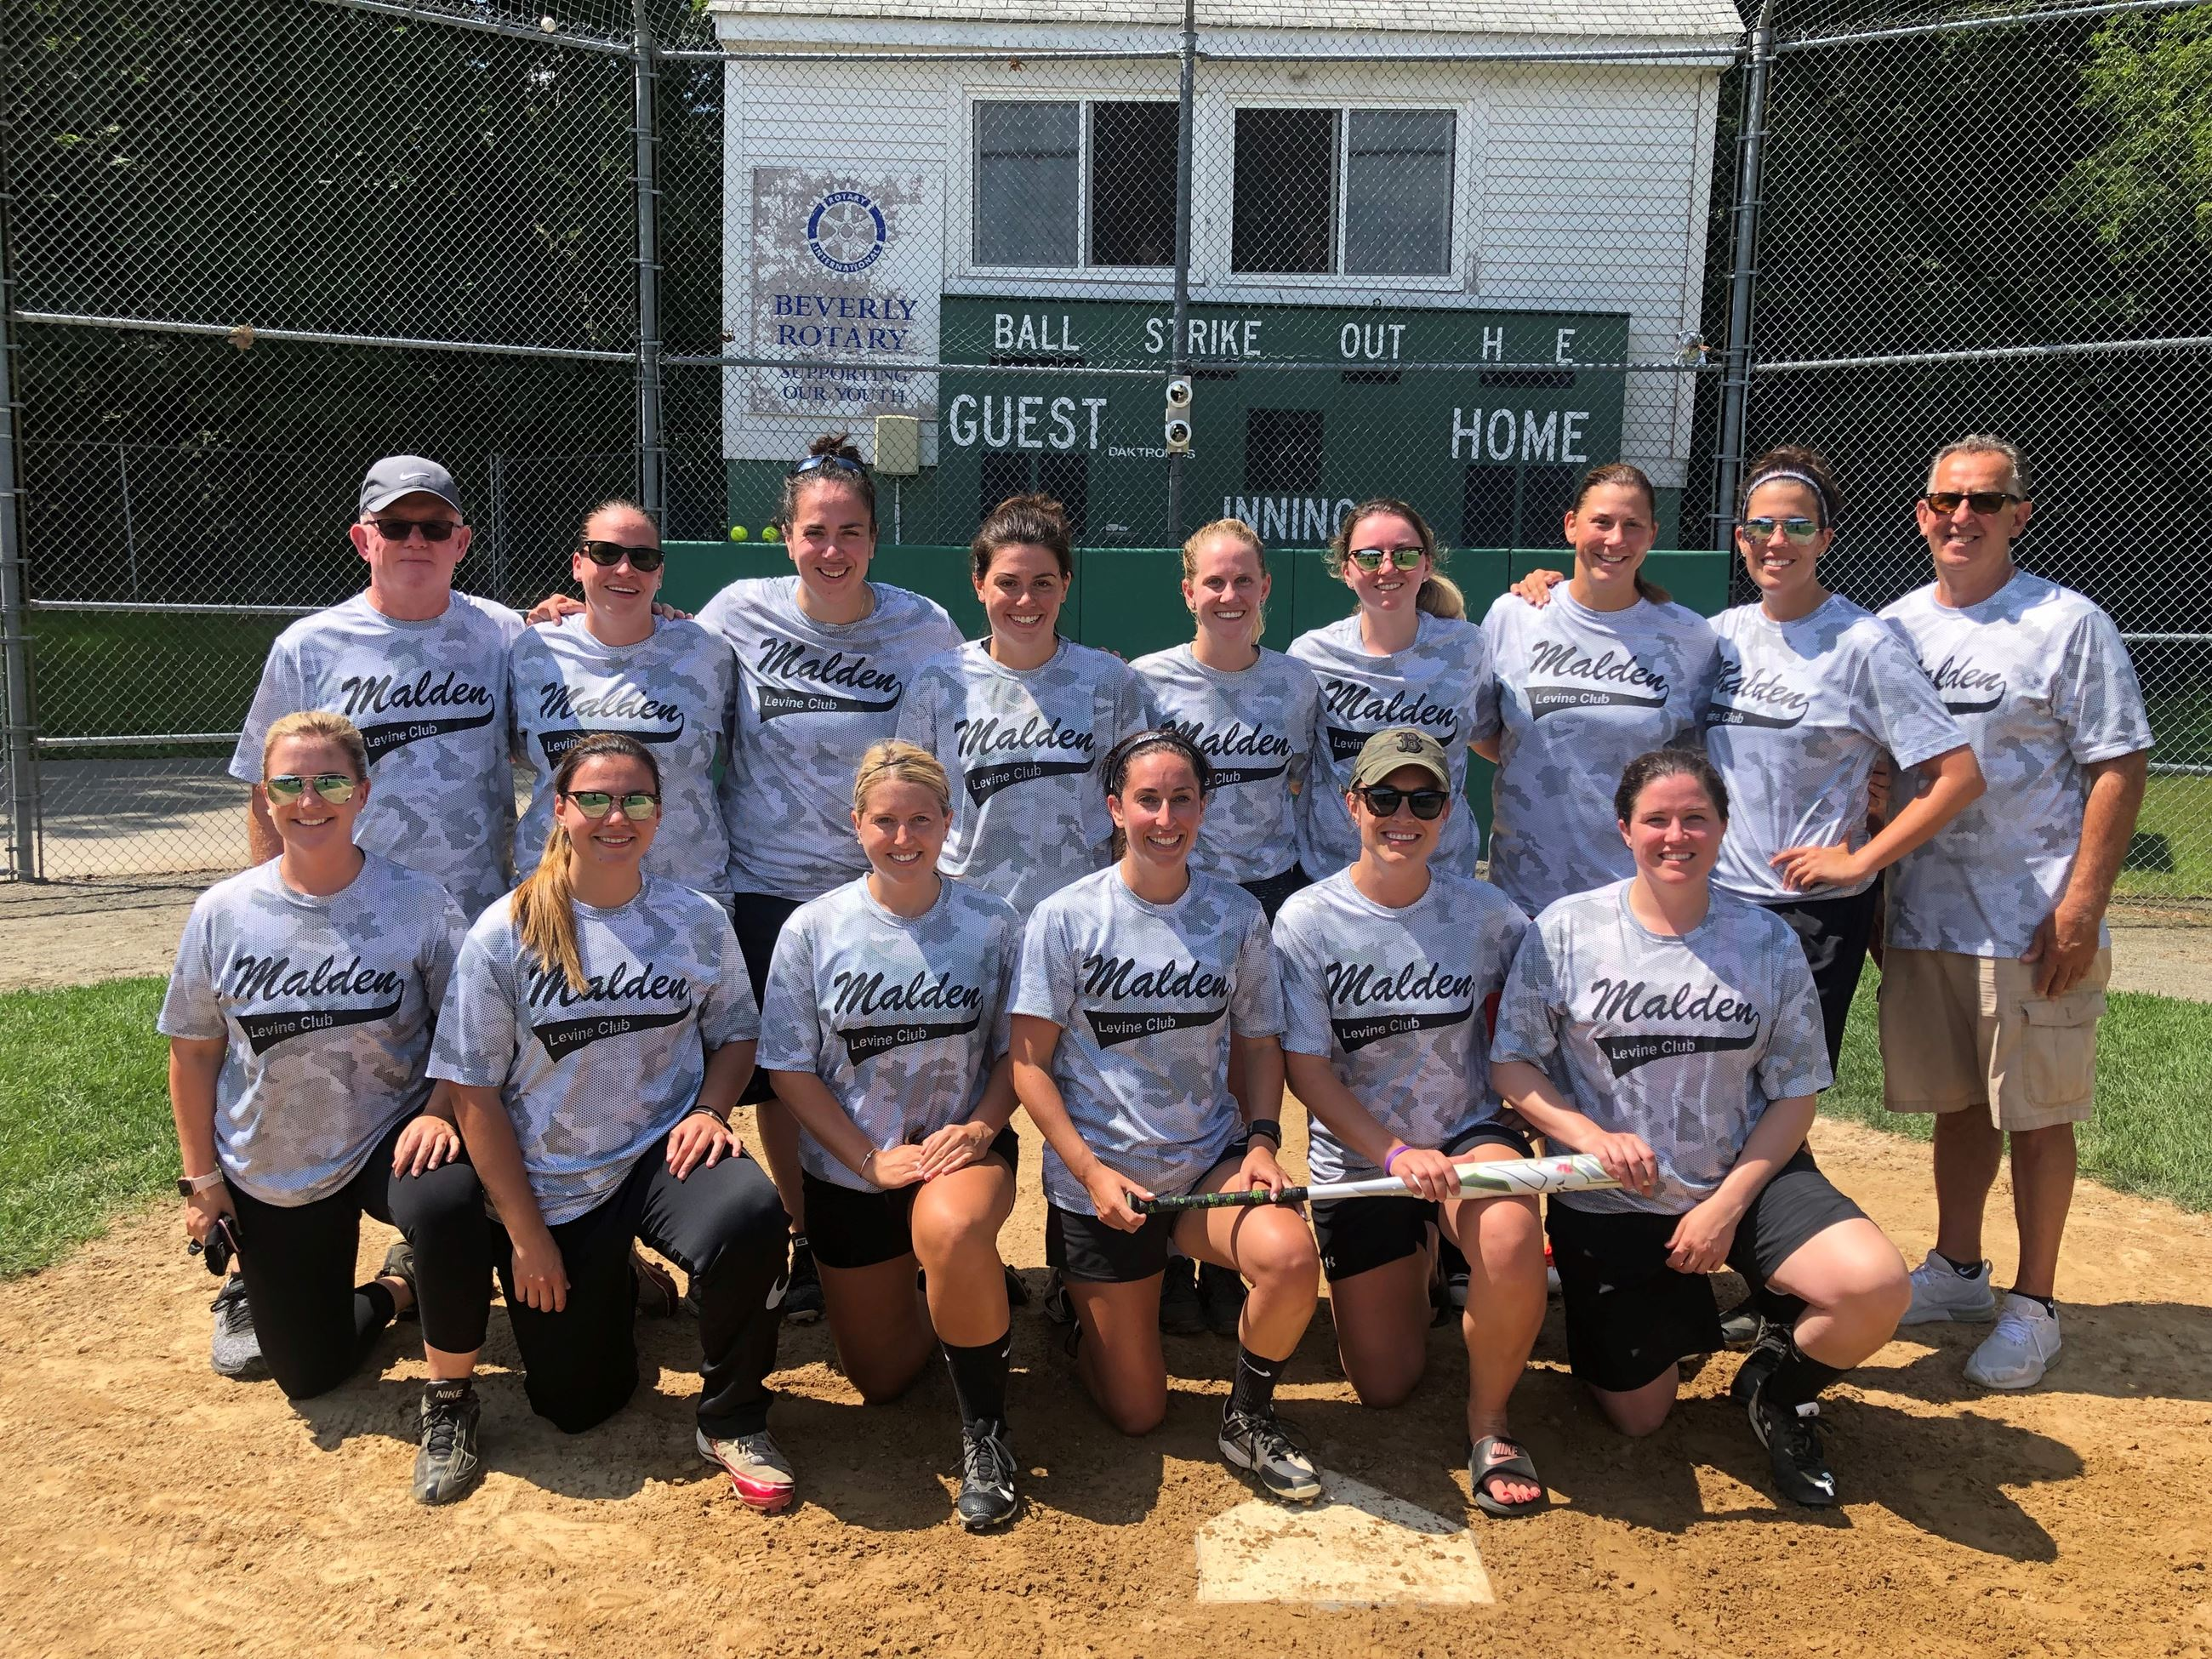 Levine Club Softball Tournament Team